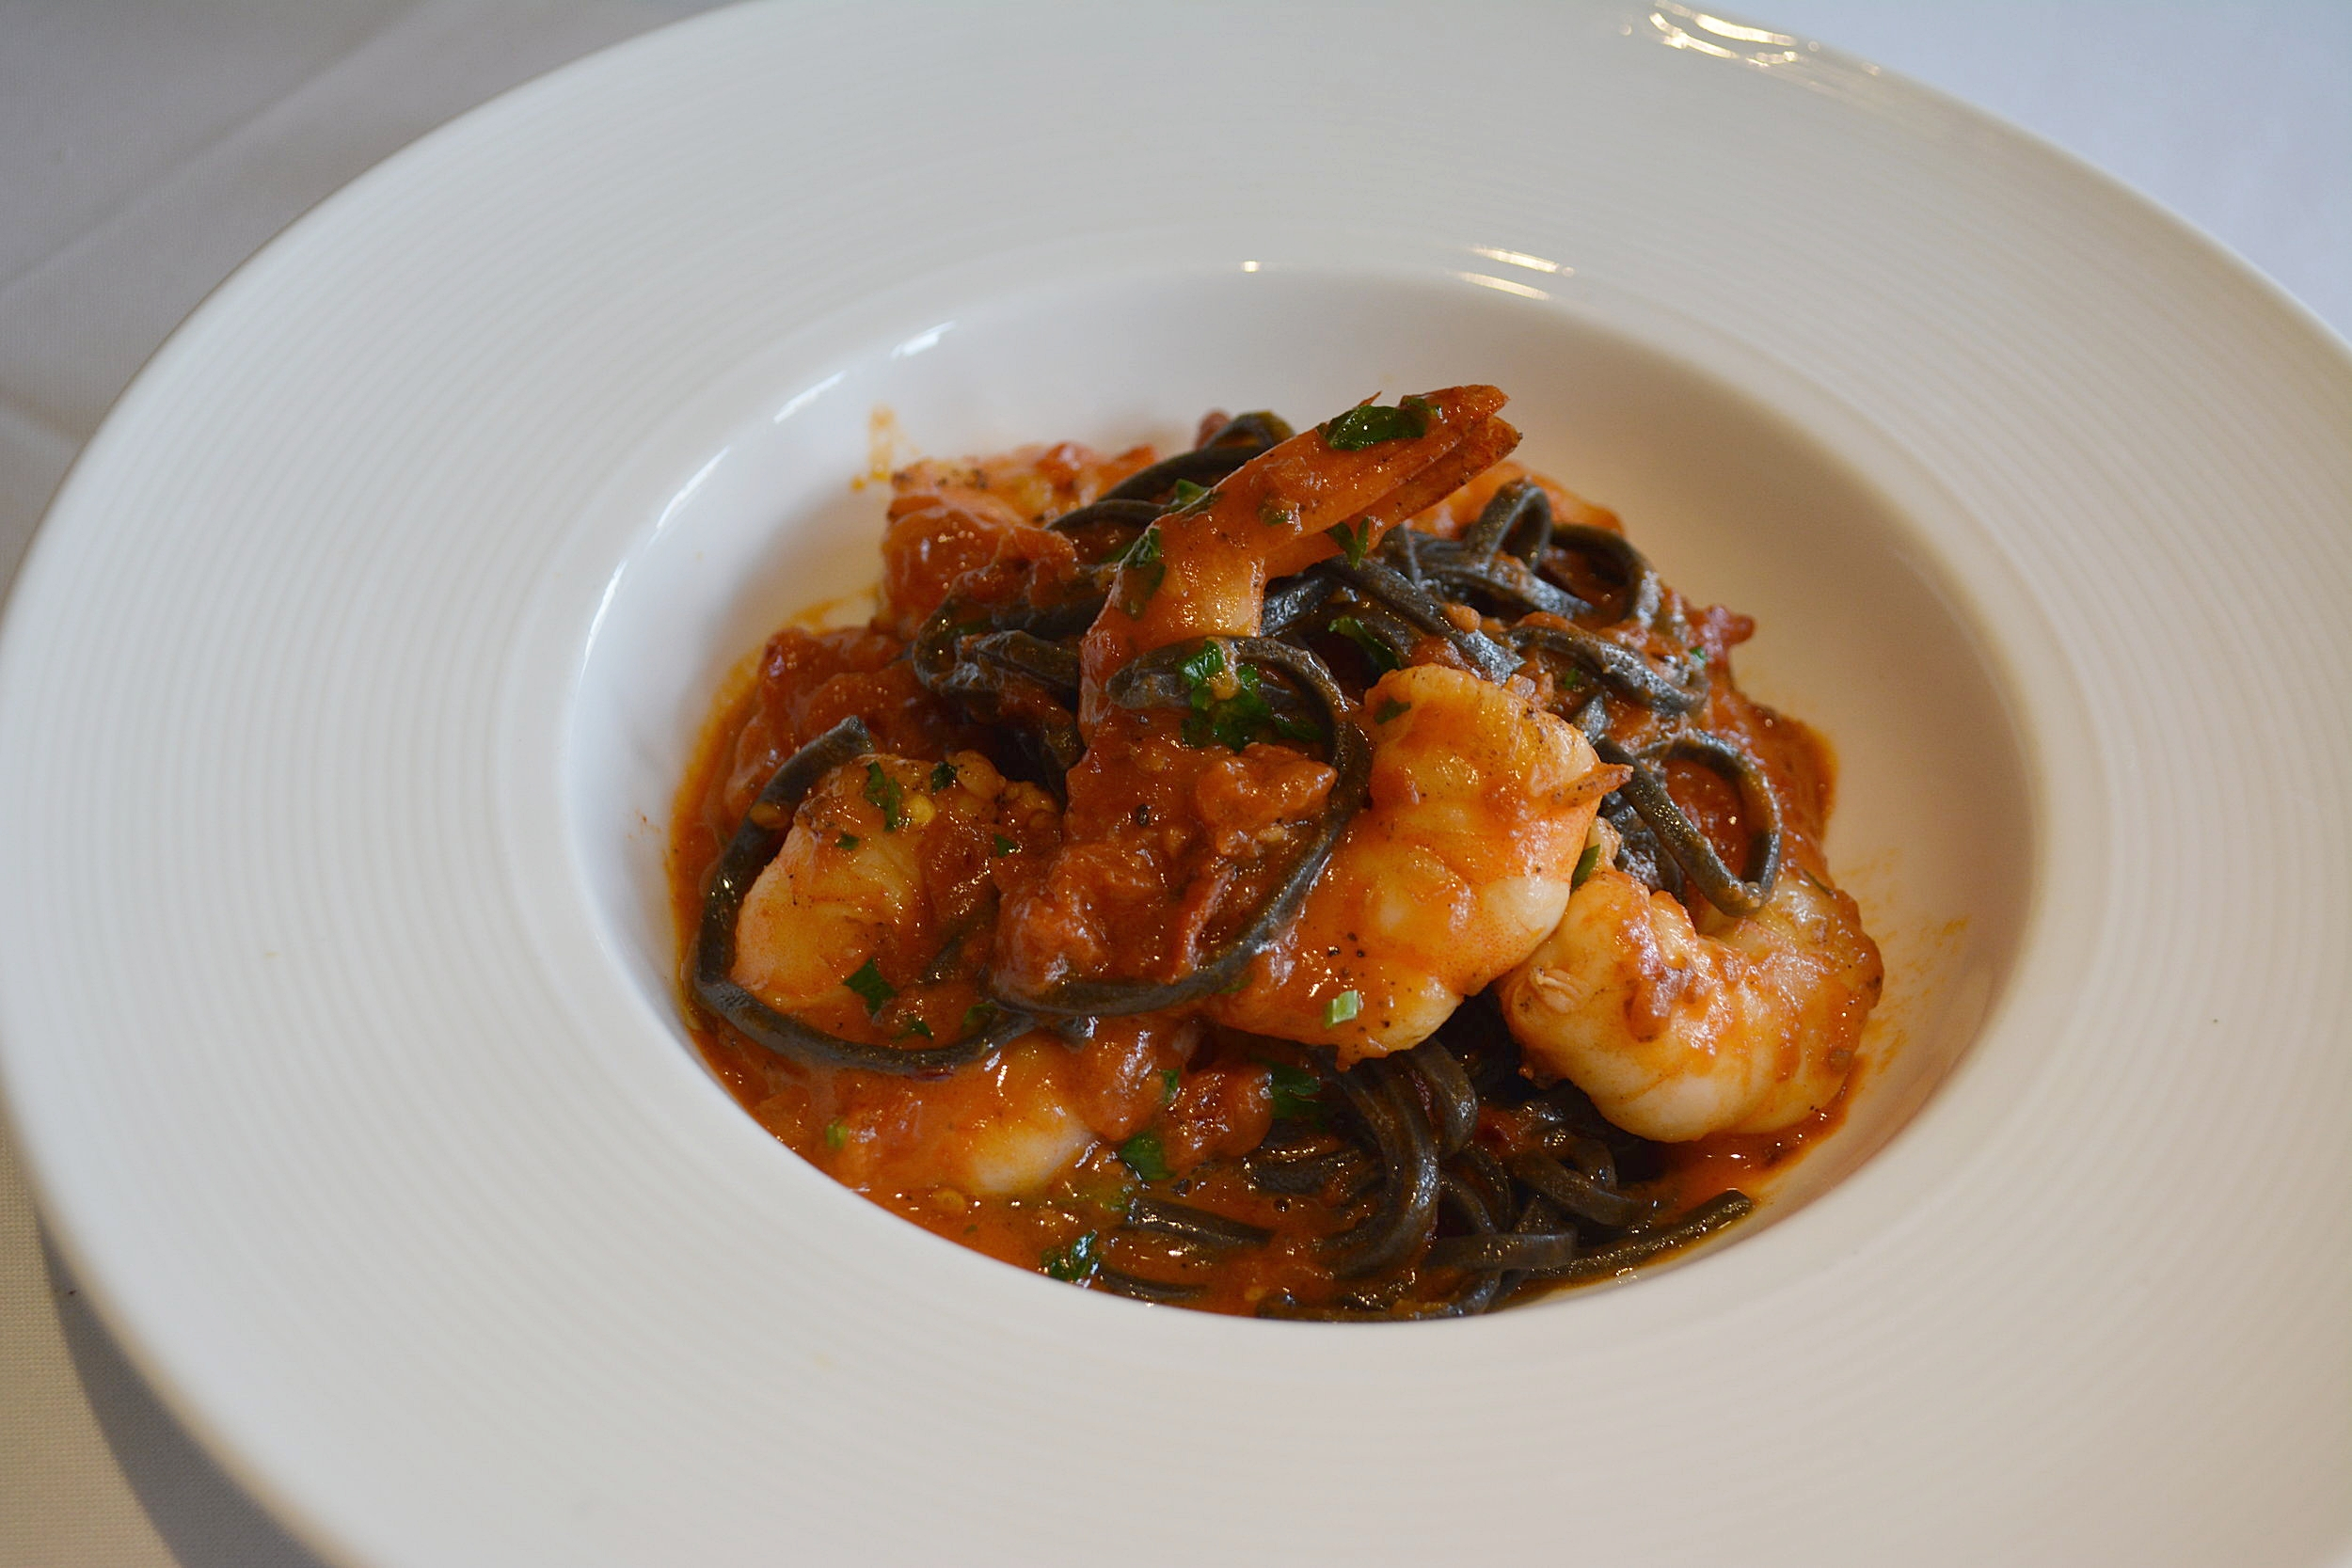 Linguine Nere featuring squid ink linguini, shrimp, and a spicy Marzano tomato sauce, is also new for spring.